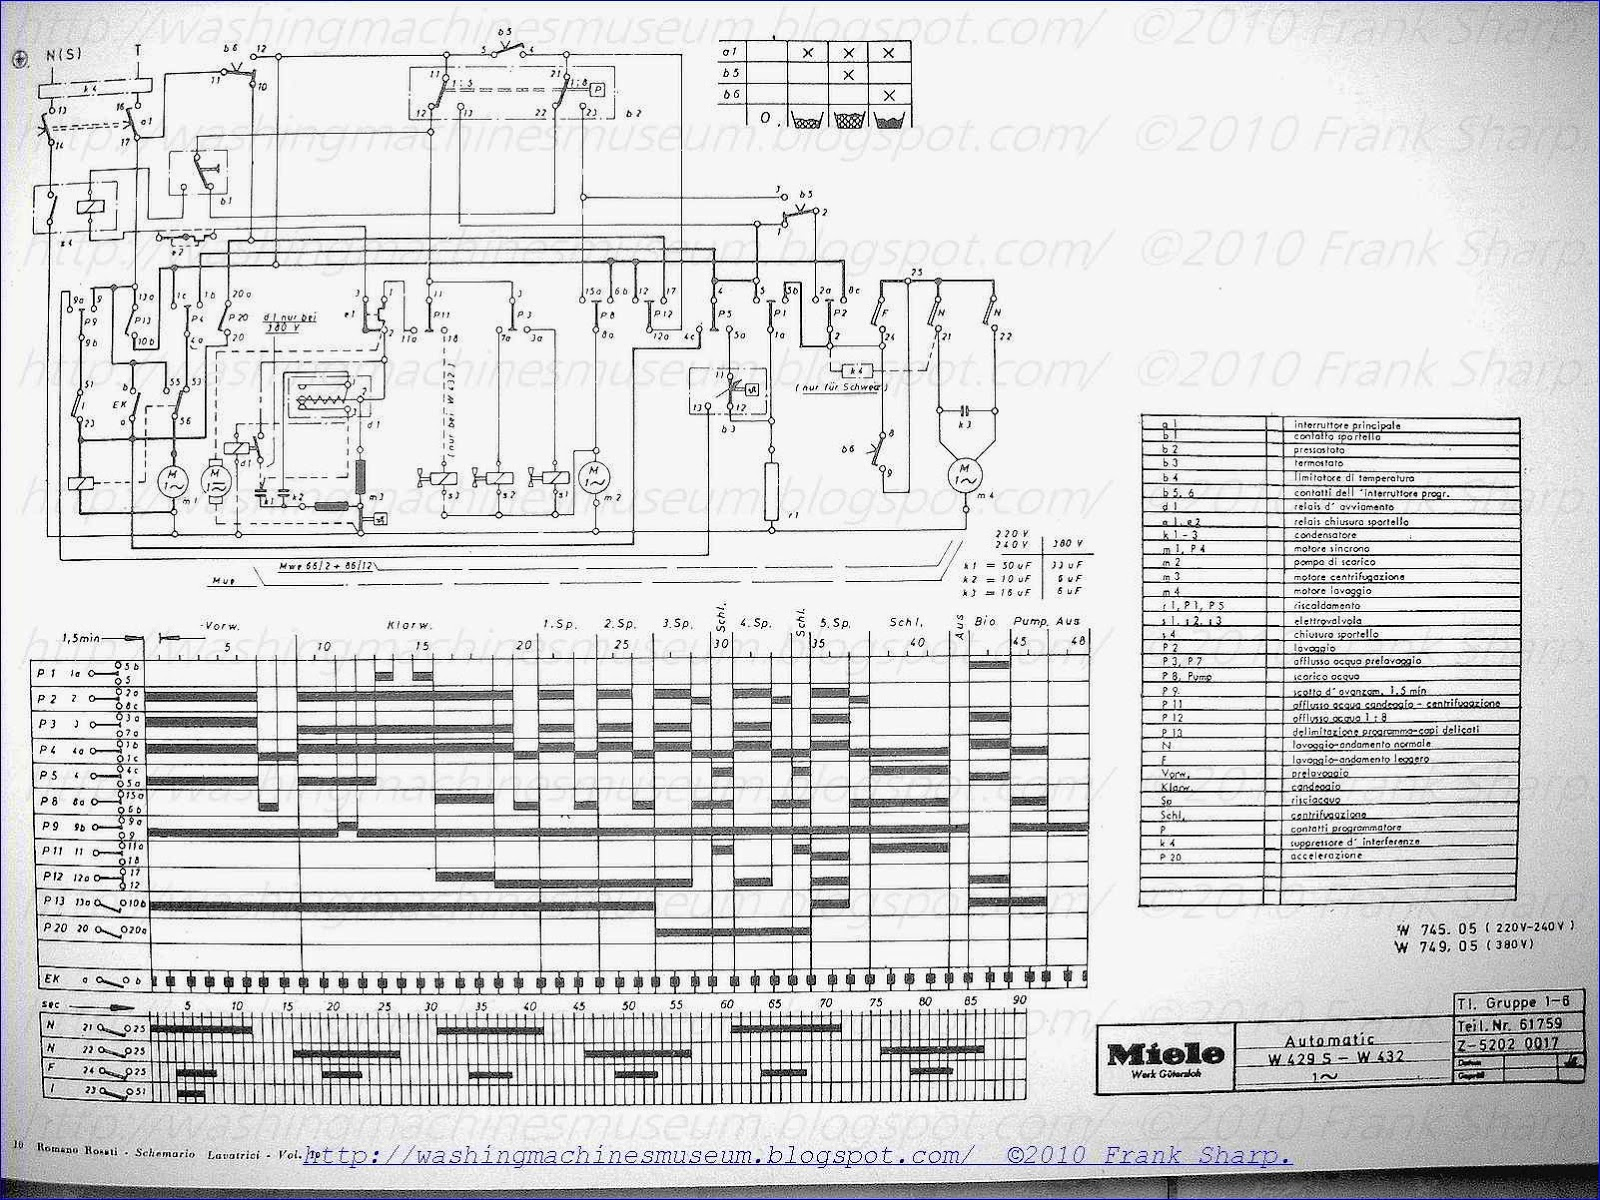 washer rama museum miele automatic w429s w432 schematic diagram rh washingmachinesmuseum blogspot com Electric Dryer Wiring Gas Dryer Wiring Diagram